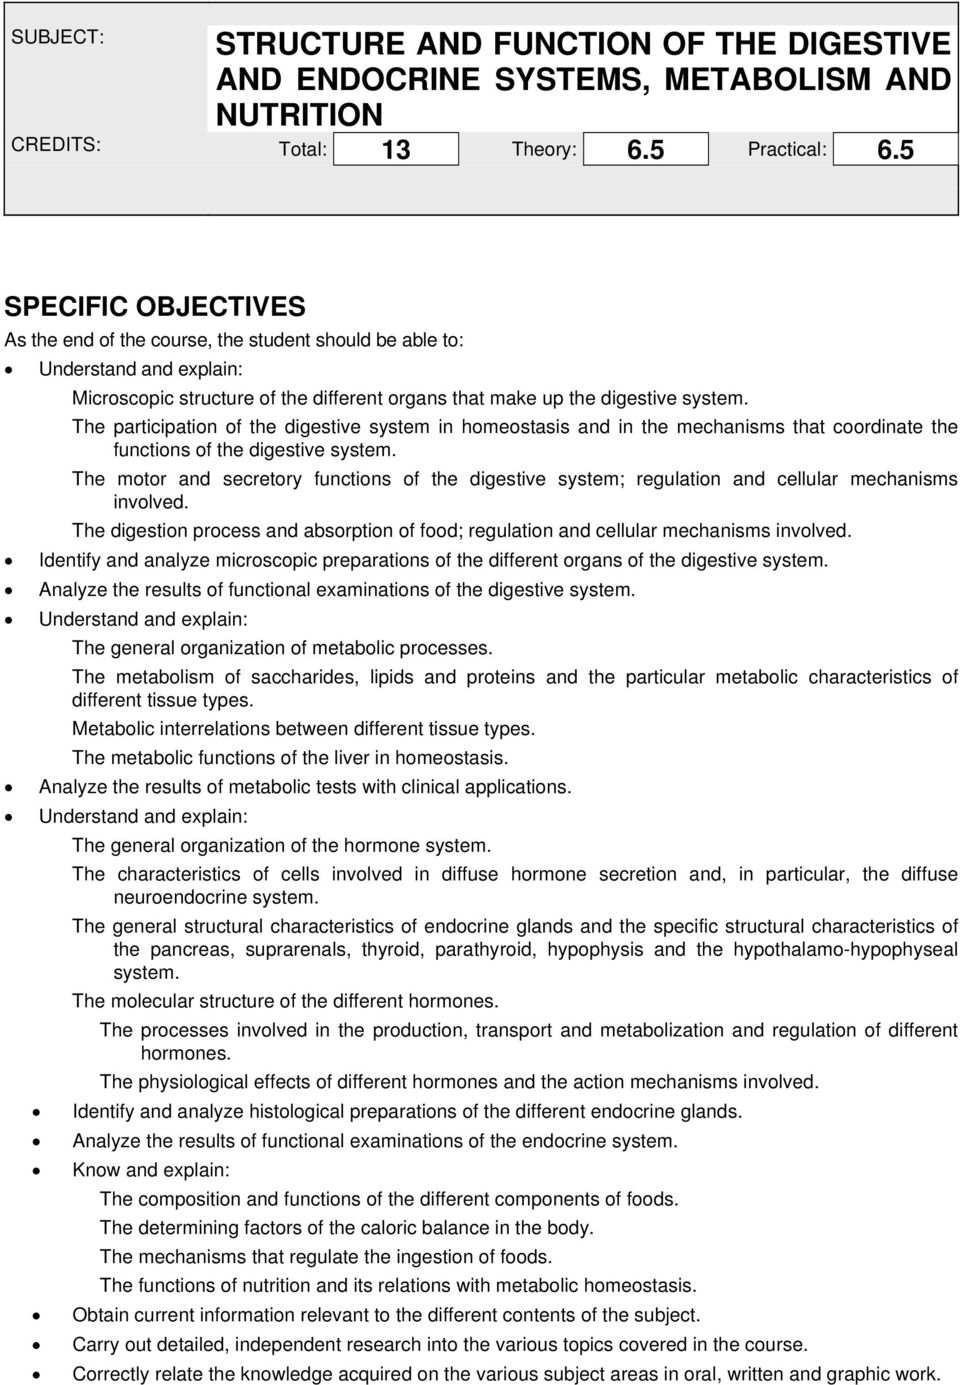 Structure And Function Of The Digestive And Endocrine Systems